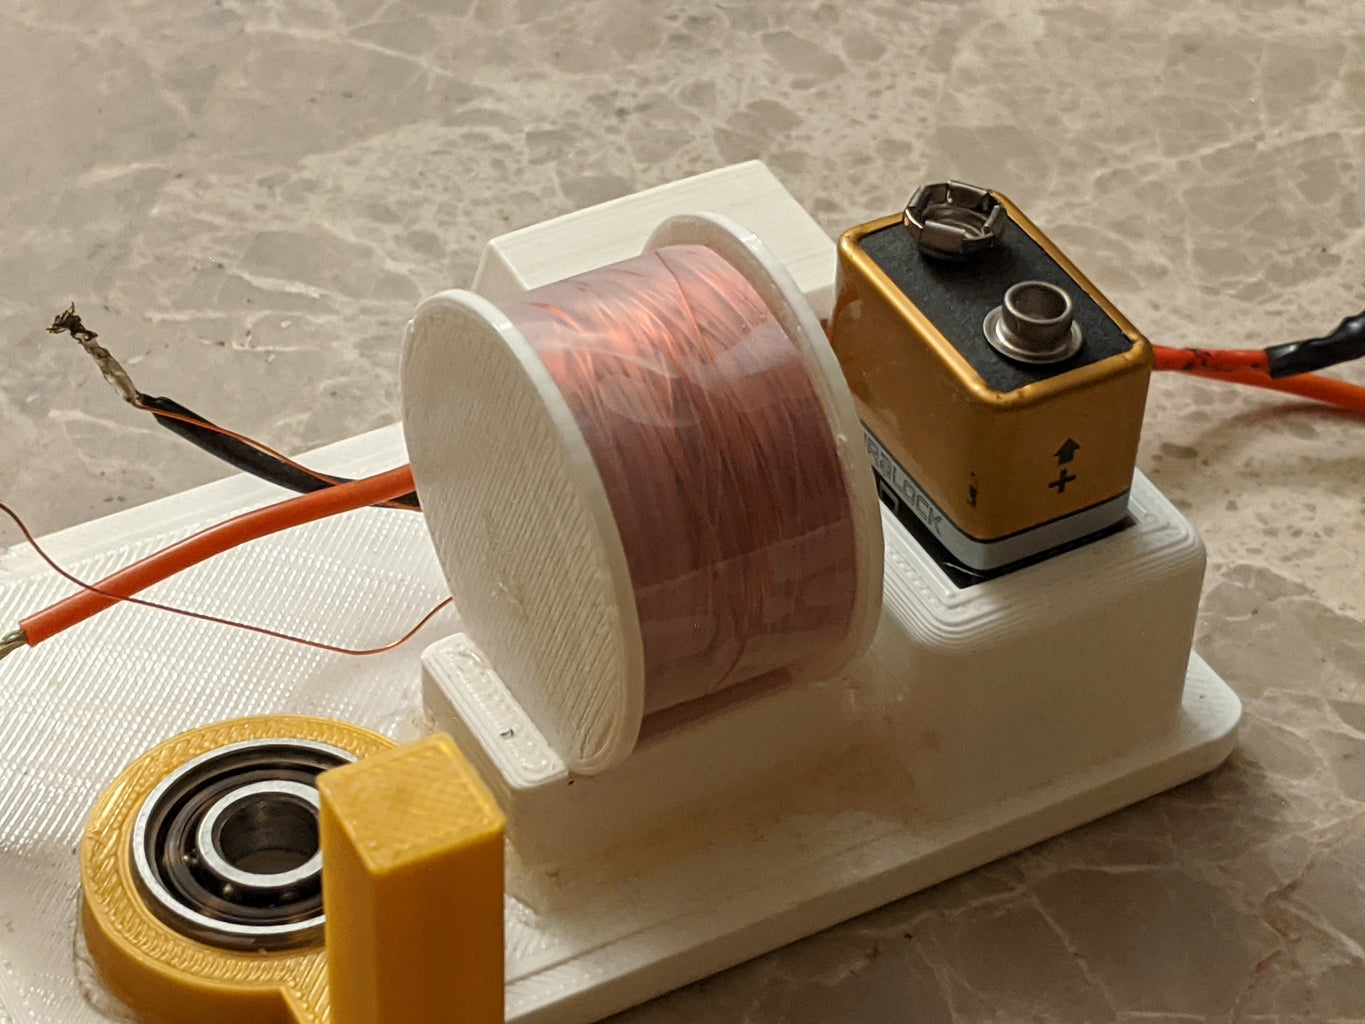 Making the Coil